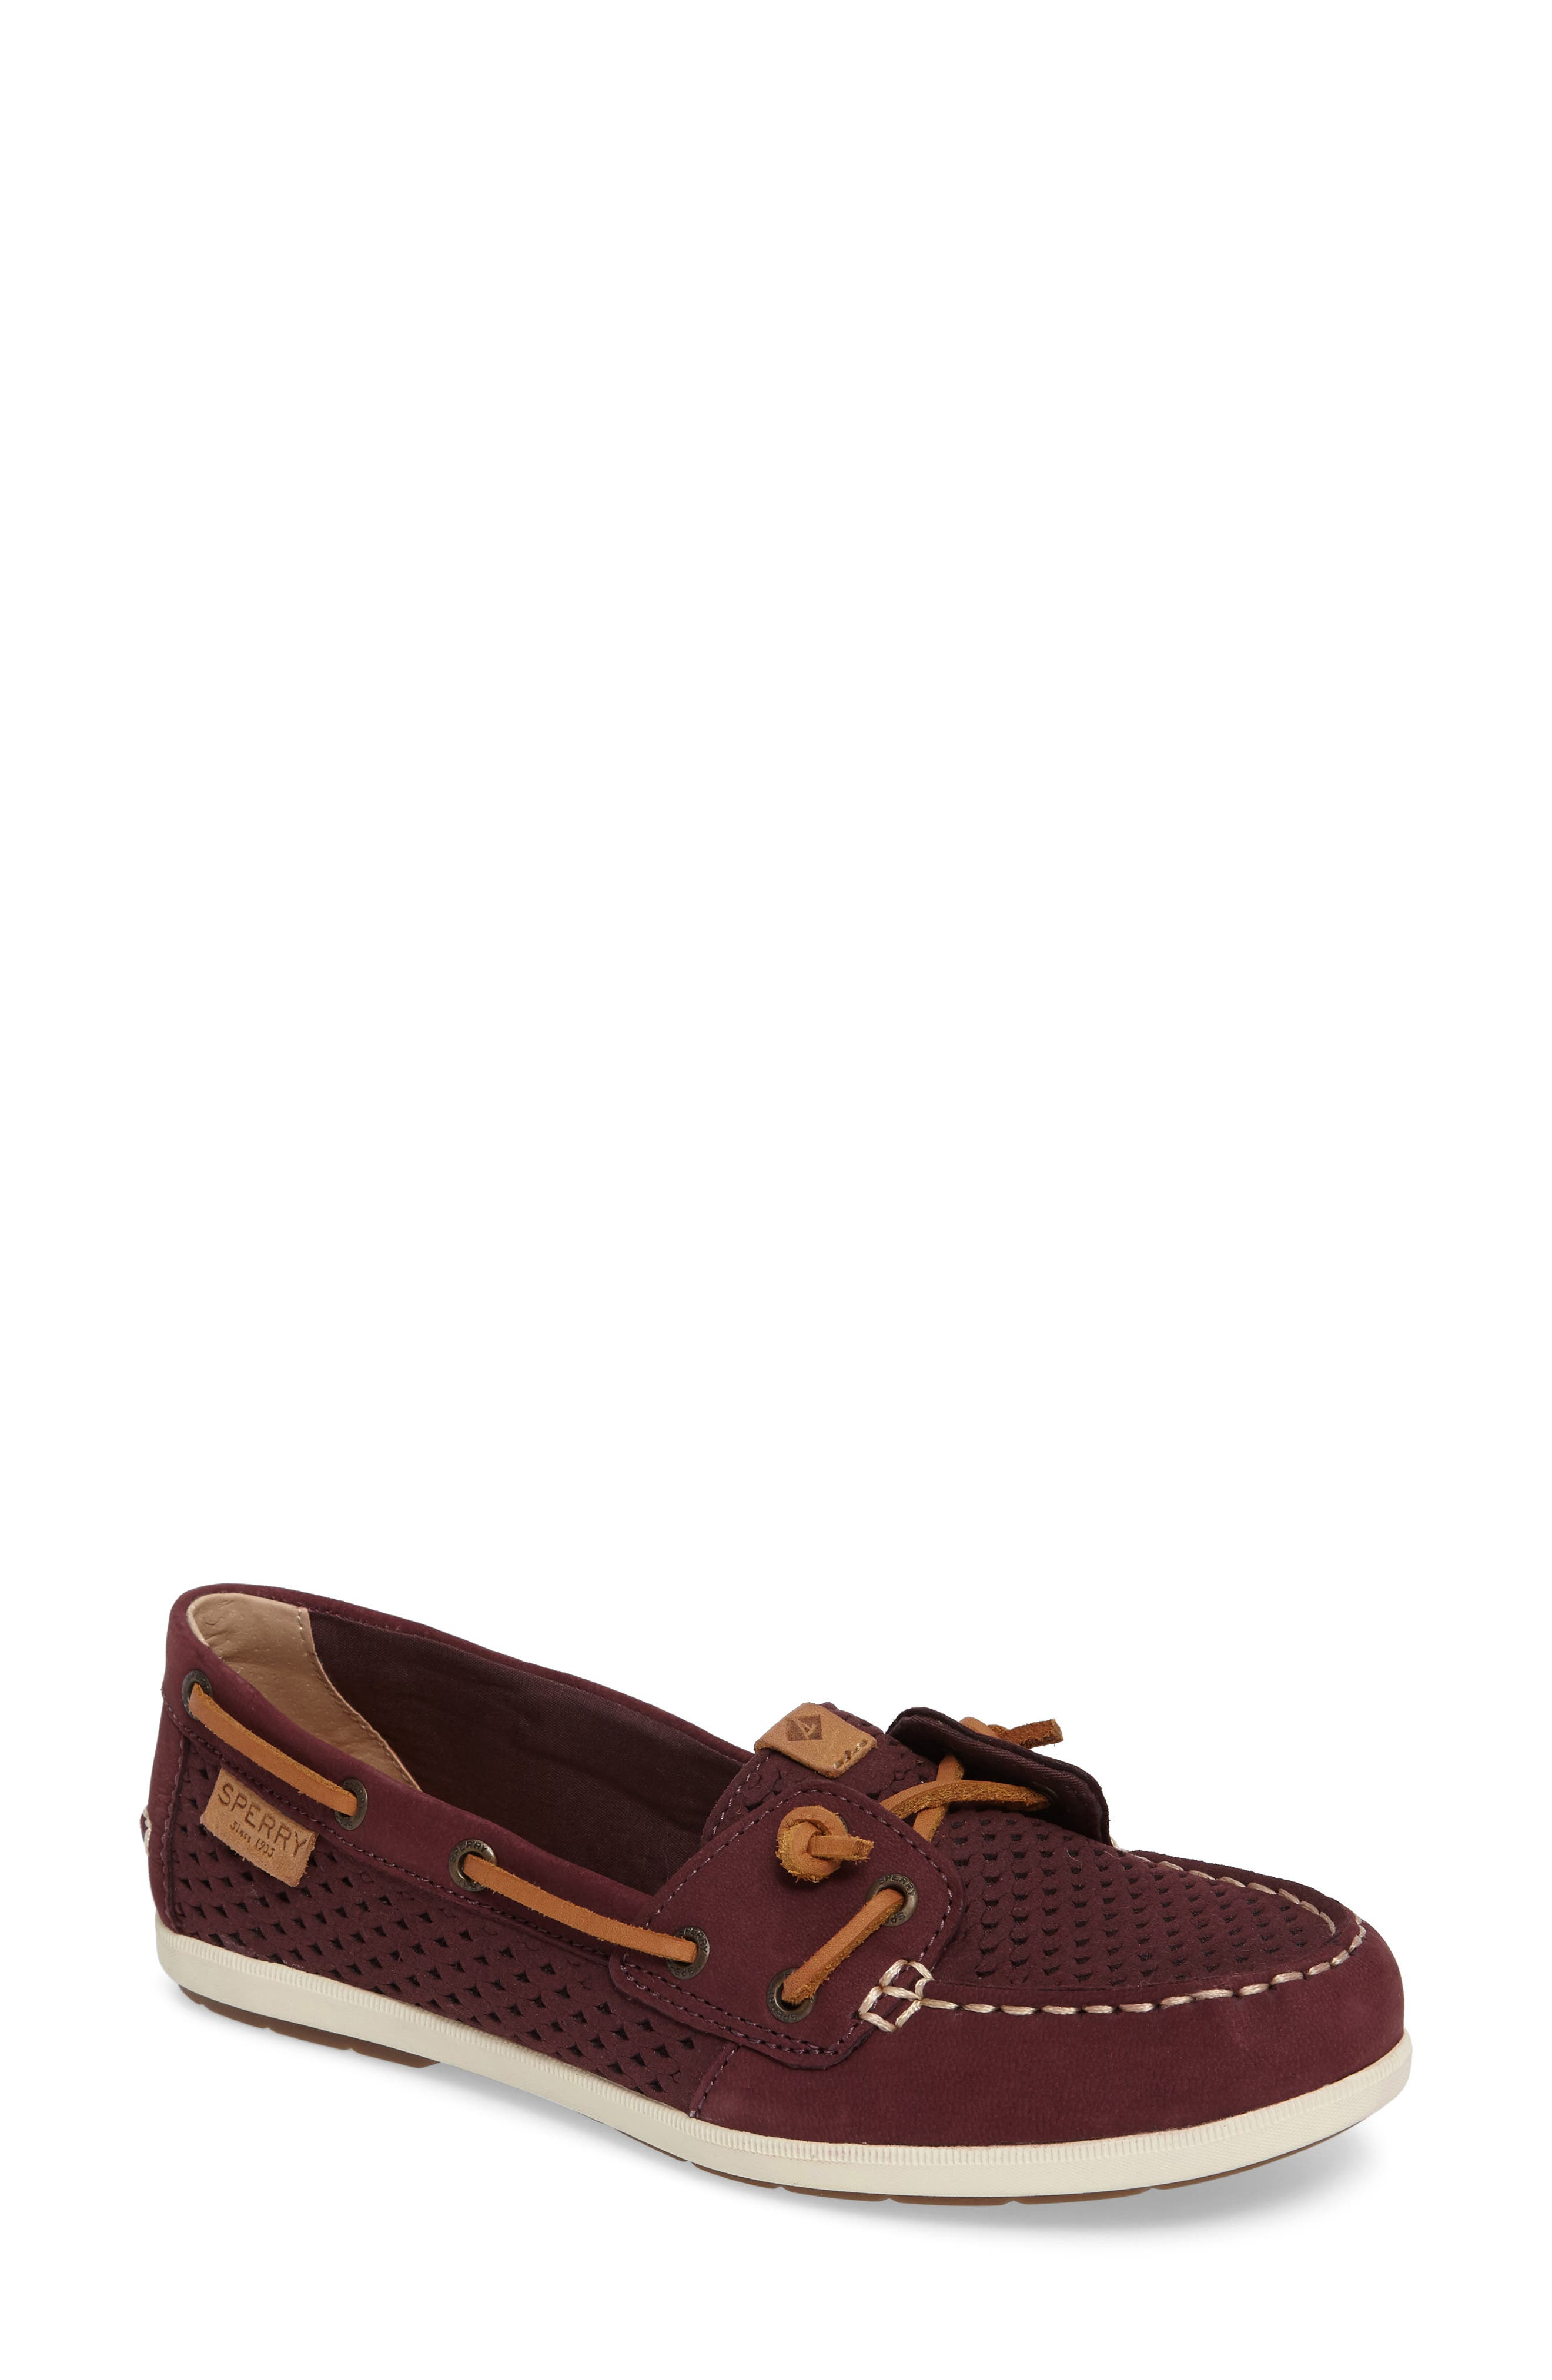 Coil Ivy Perforated Boat Shoe,                             Main thumbnail 1, color,